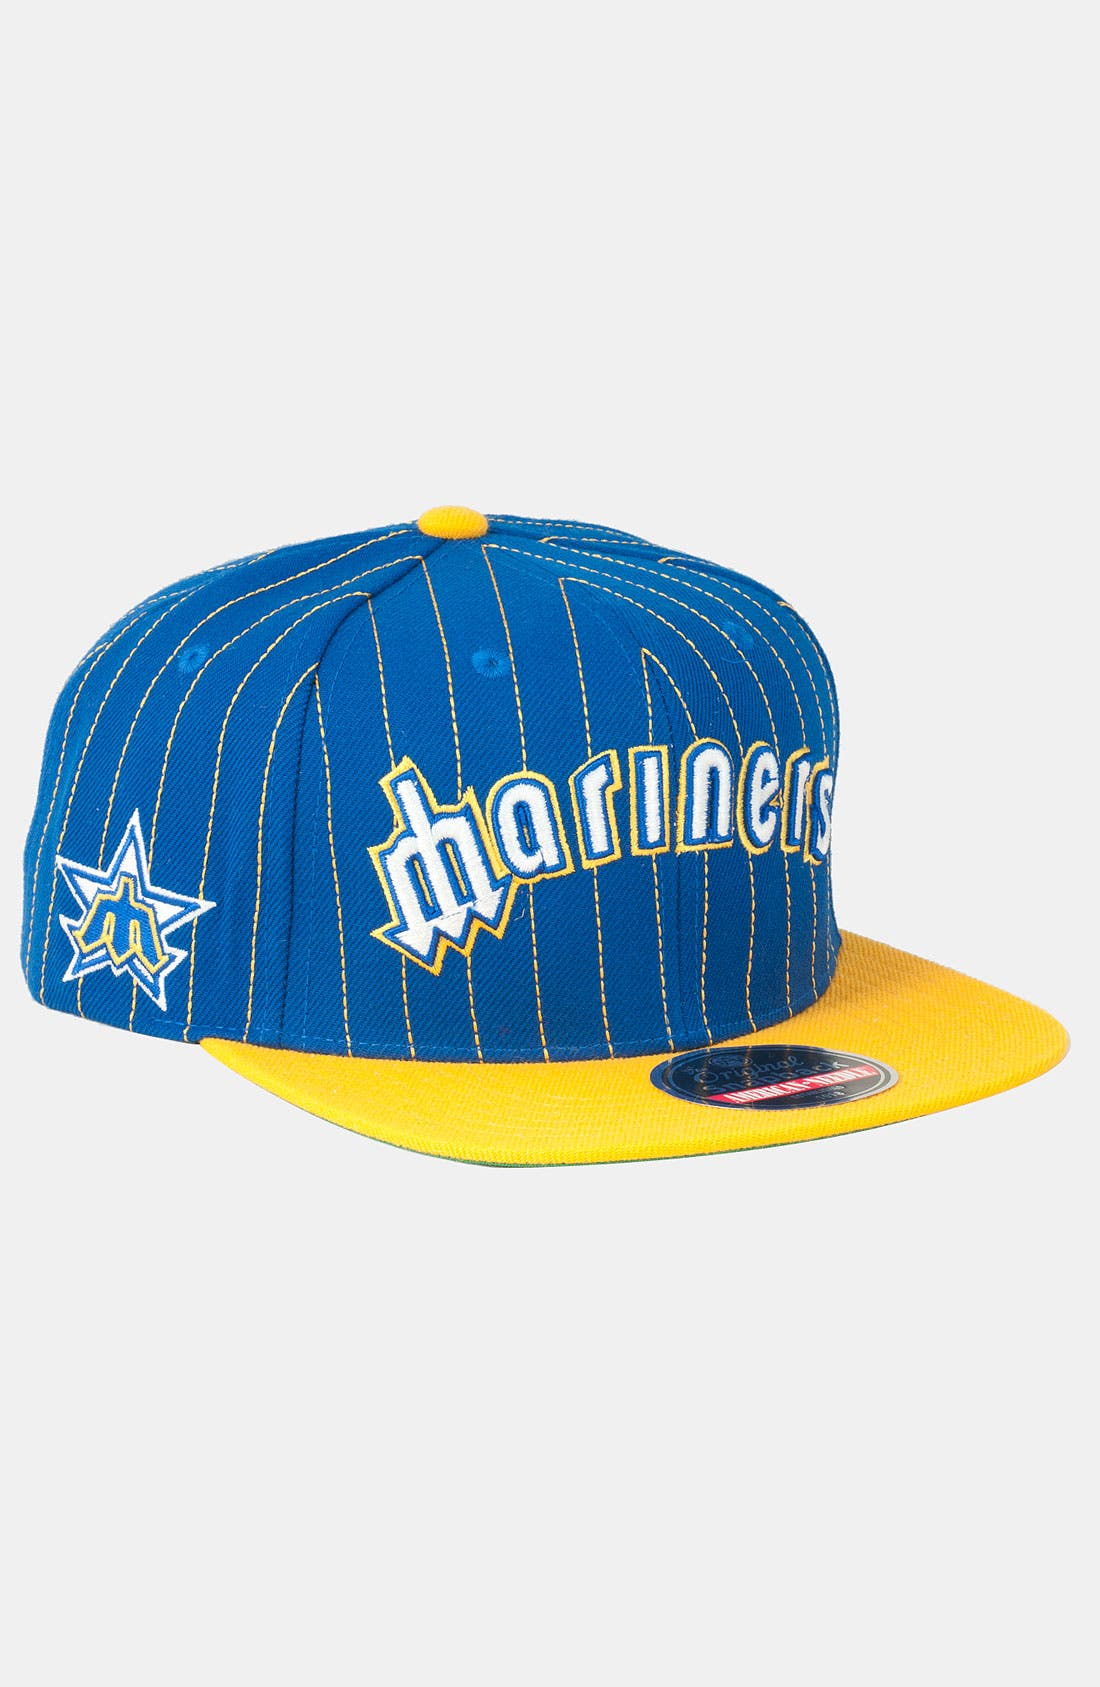 Alternate Image 1 Selected - American Needle 'Mariners' Snapback Baseball Cap